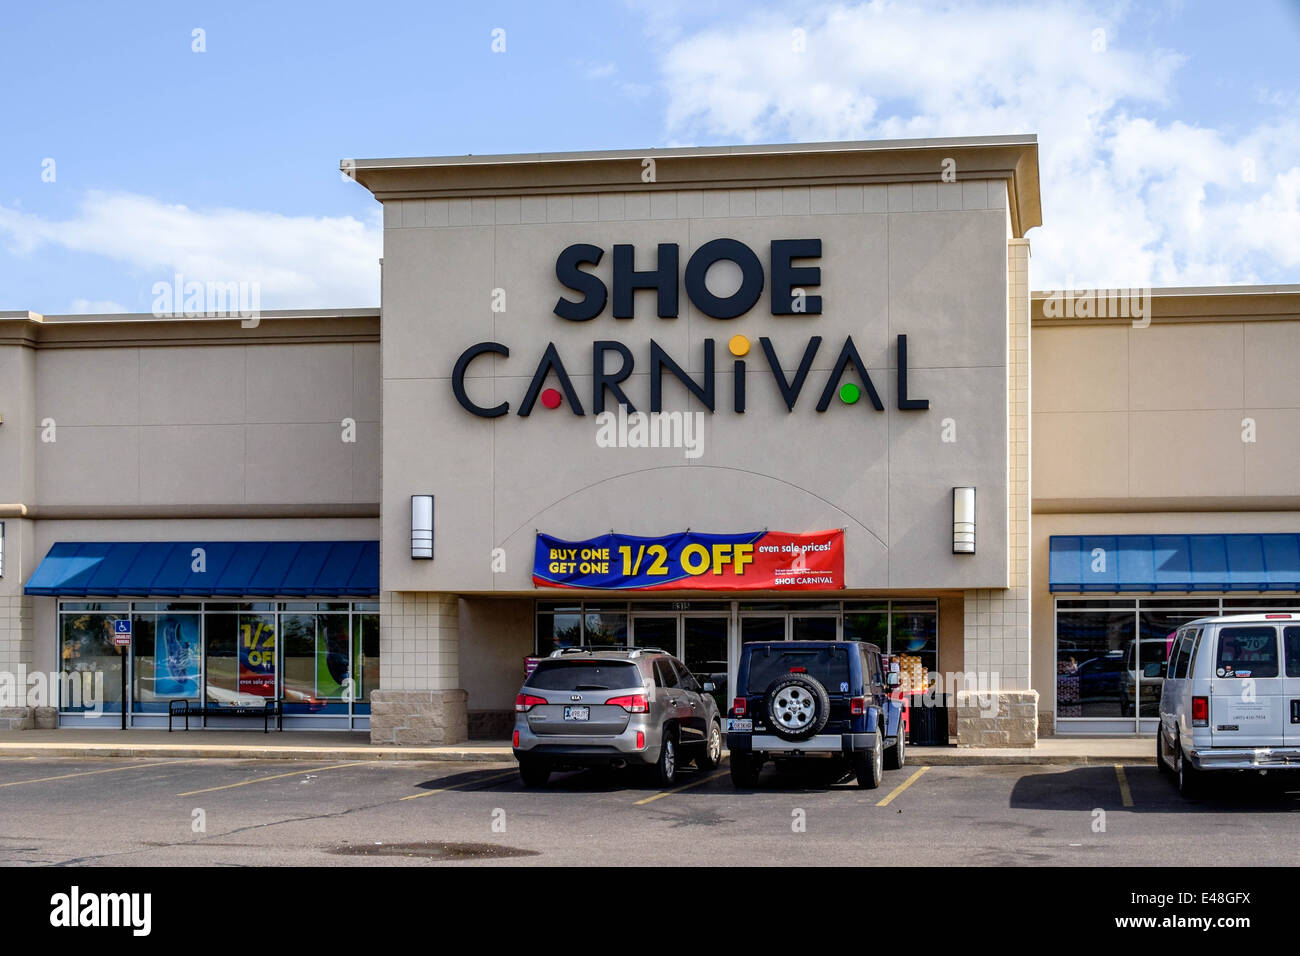 exterior storefront of Shoe Carnival